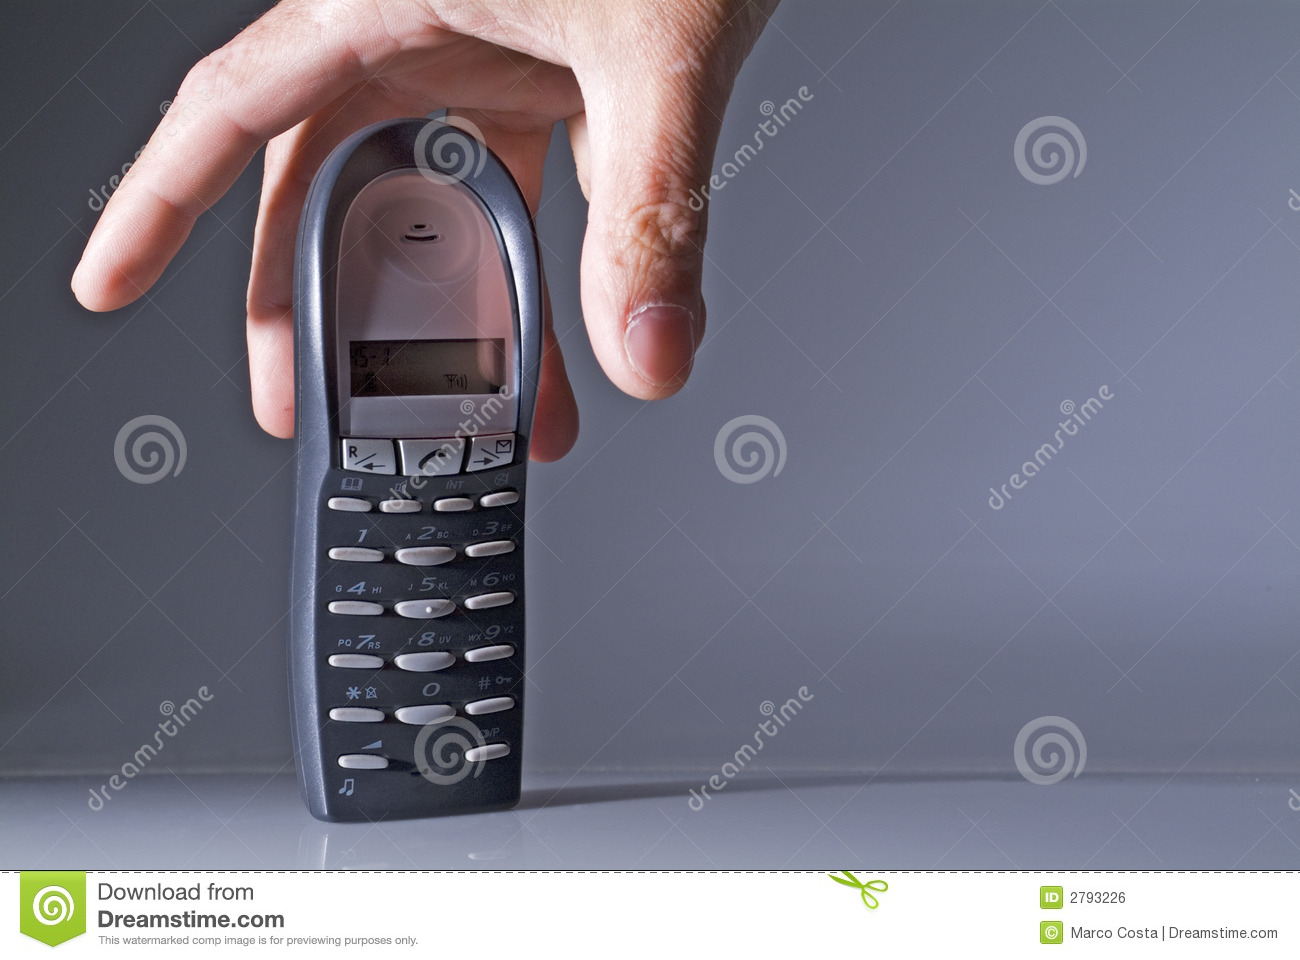 Piking up the phone